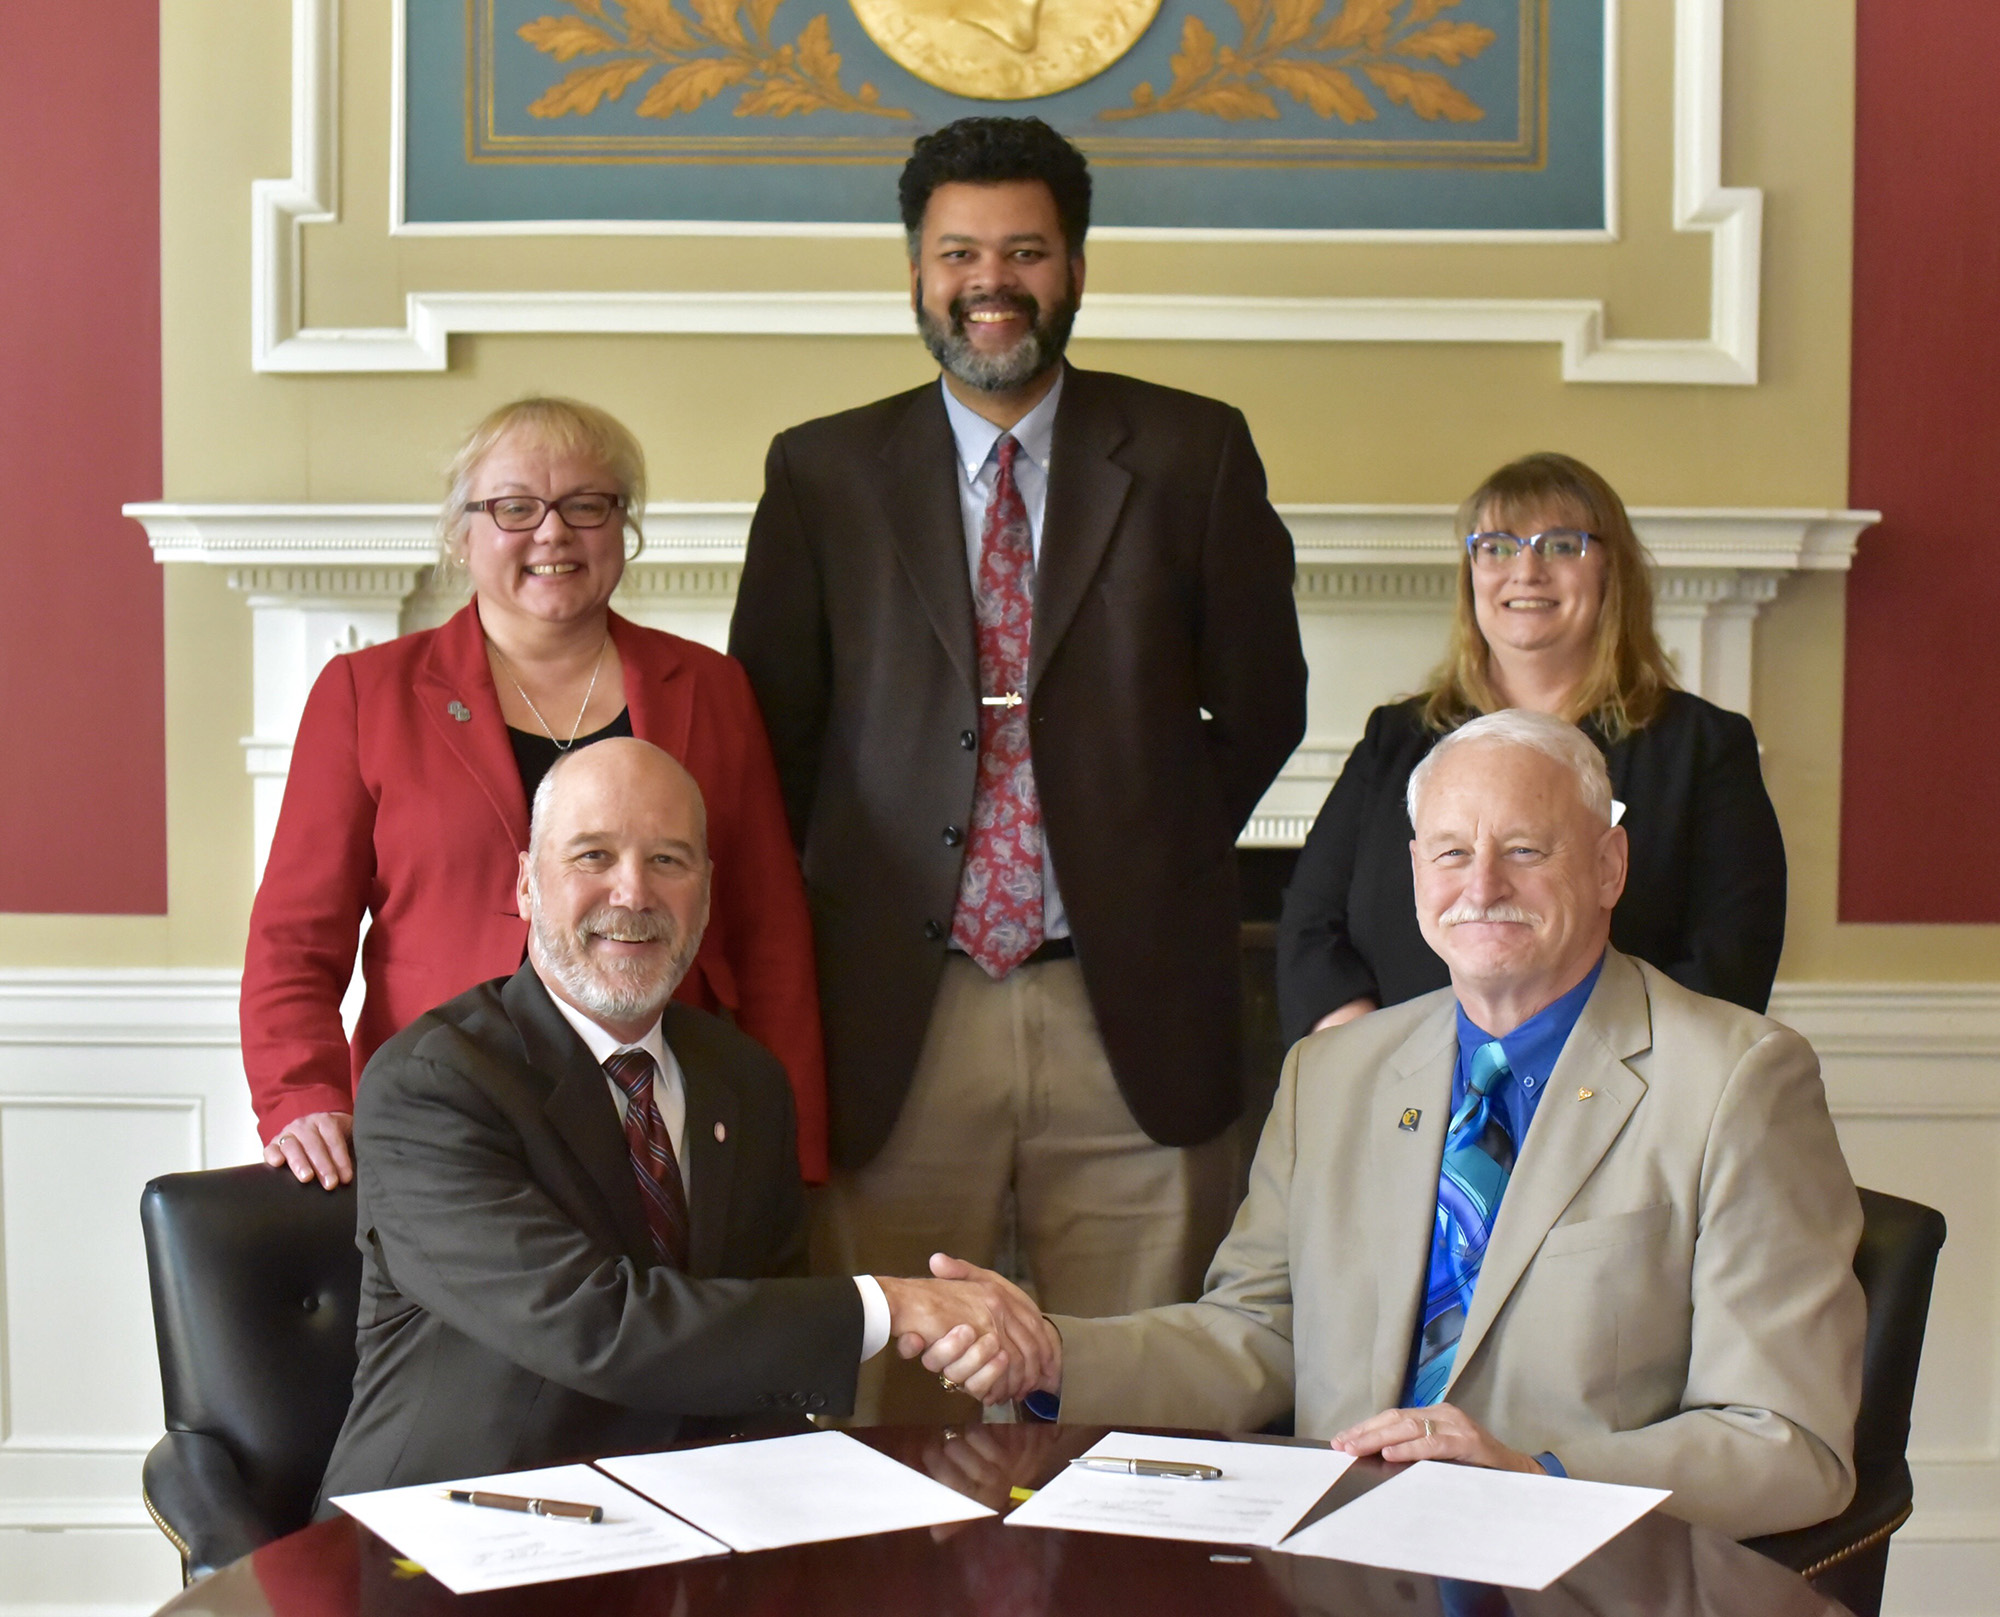 Olivet College and Kellogg Community College signed an agreement on Feb. 19 to expand the two institutions' nursing program partnership. Pictured seated, from left to right, are President Steven M. Corey, Ph.D., Olivet College; and President Mark O'Connell, Kellogg Community College. Standing, from left to right, are Provost and Dean of the College Maria G. Davis, Ph.D., Olivet College; Dr. Paul Watson, Kellogg Community College vice president of instruction; and Dr. Lorraine Manier, Olivet College director of nursing education.